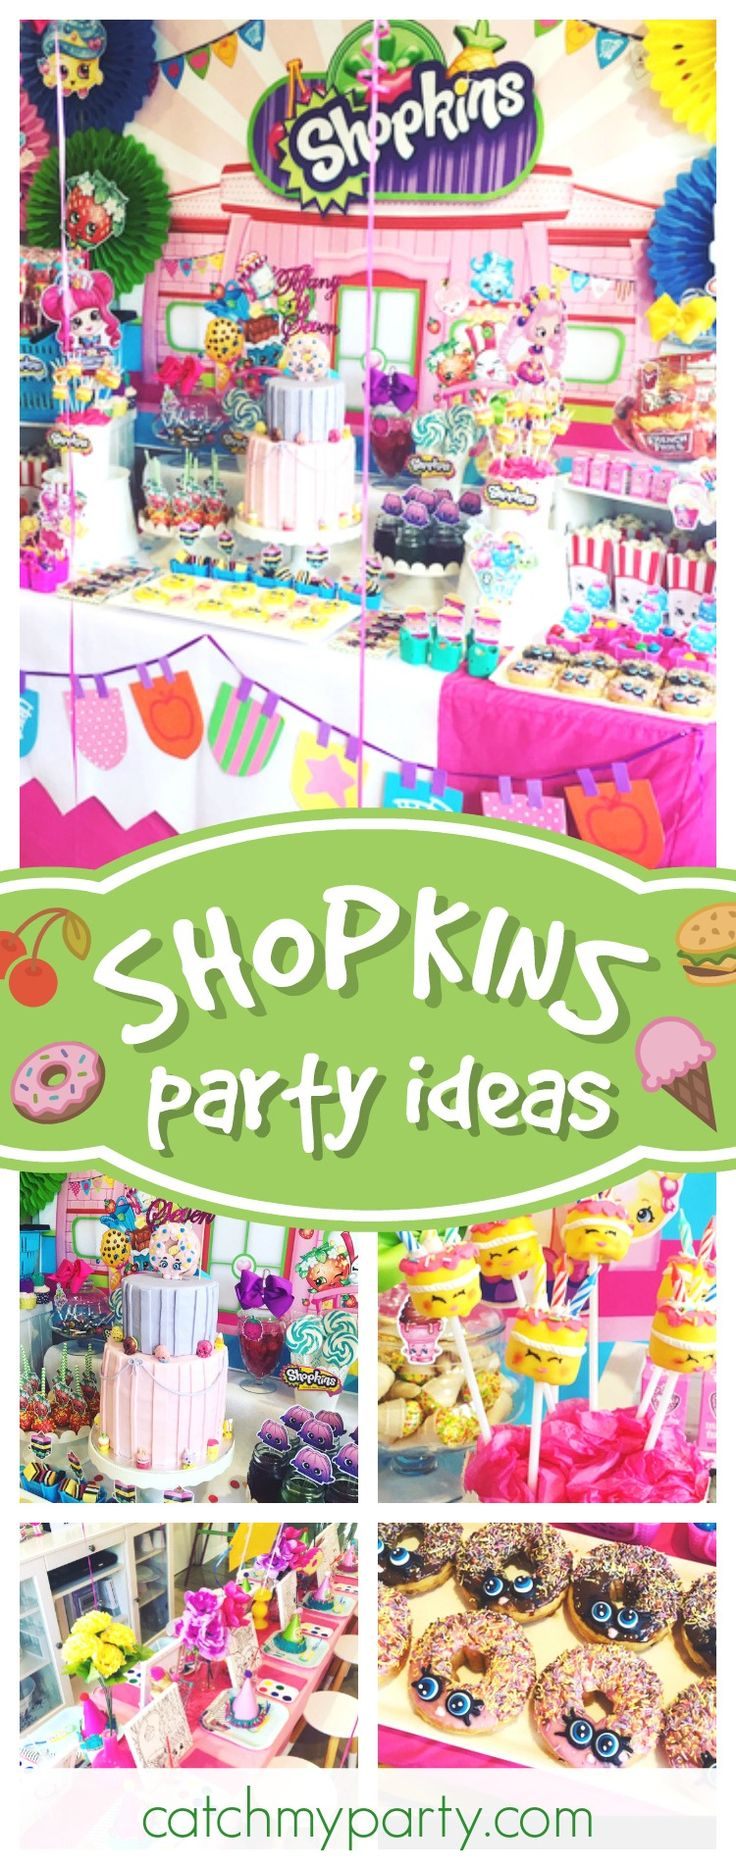 Check out this gorgeous Shopkins birthday party! The birthday cake is awesome!! See more party ideas and share yours at CatchMyParty.com